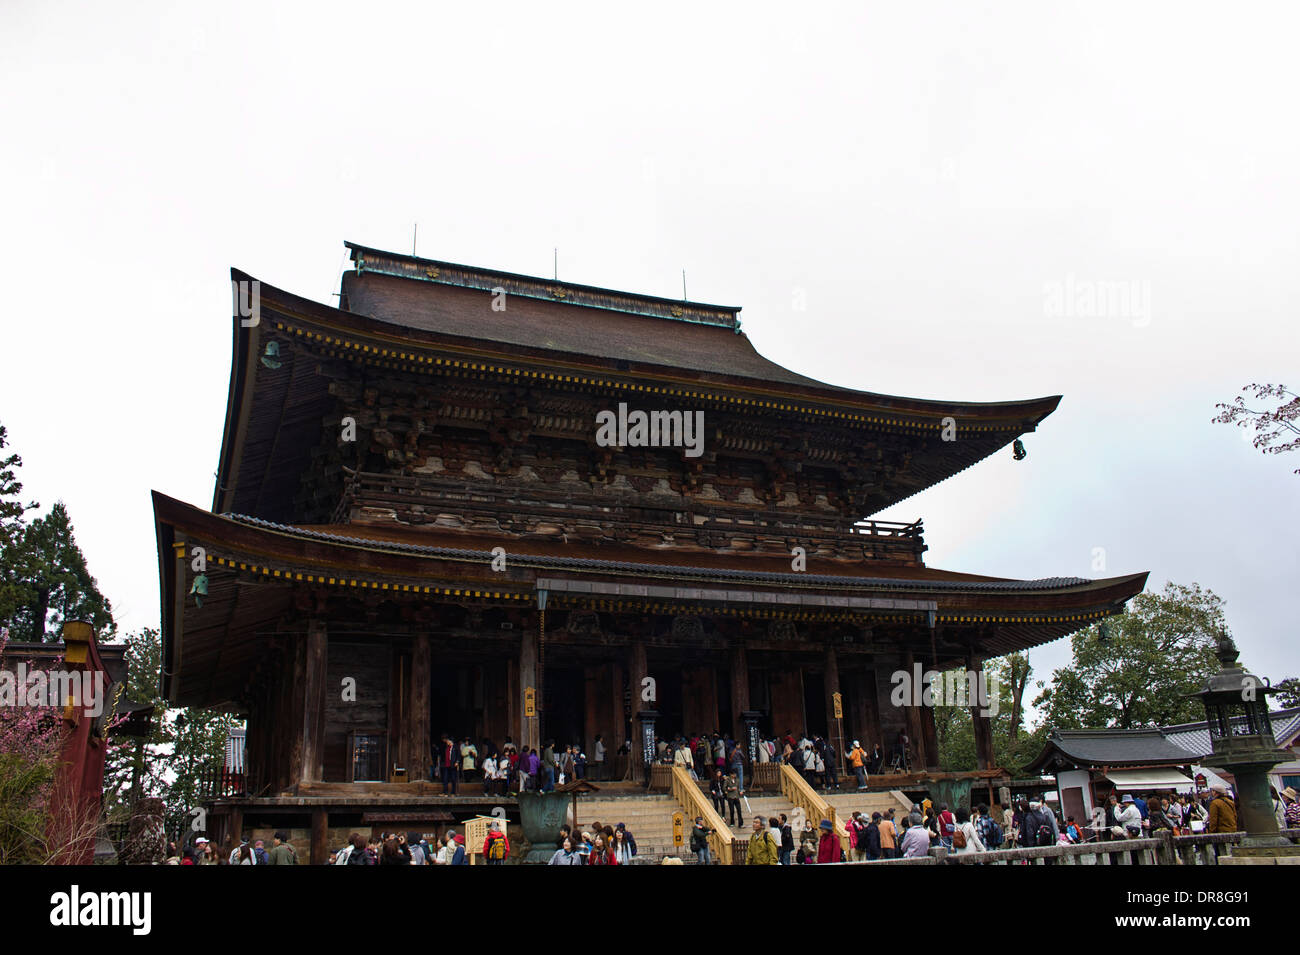 Kongozanji in Nara, Japan - Stock Image